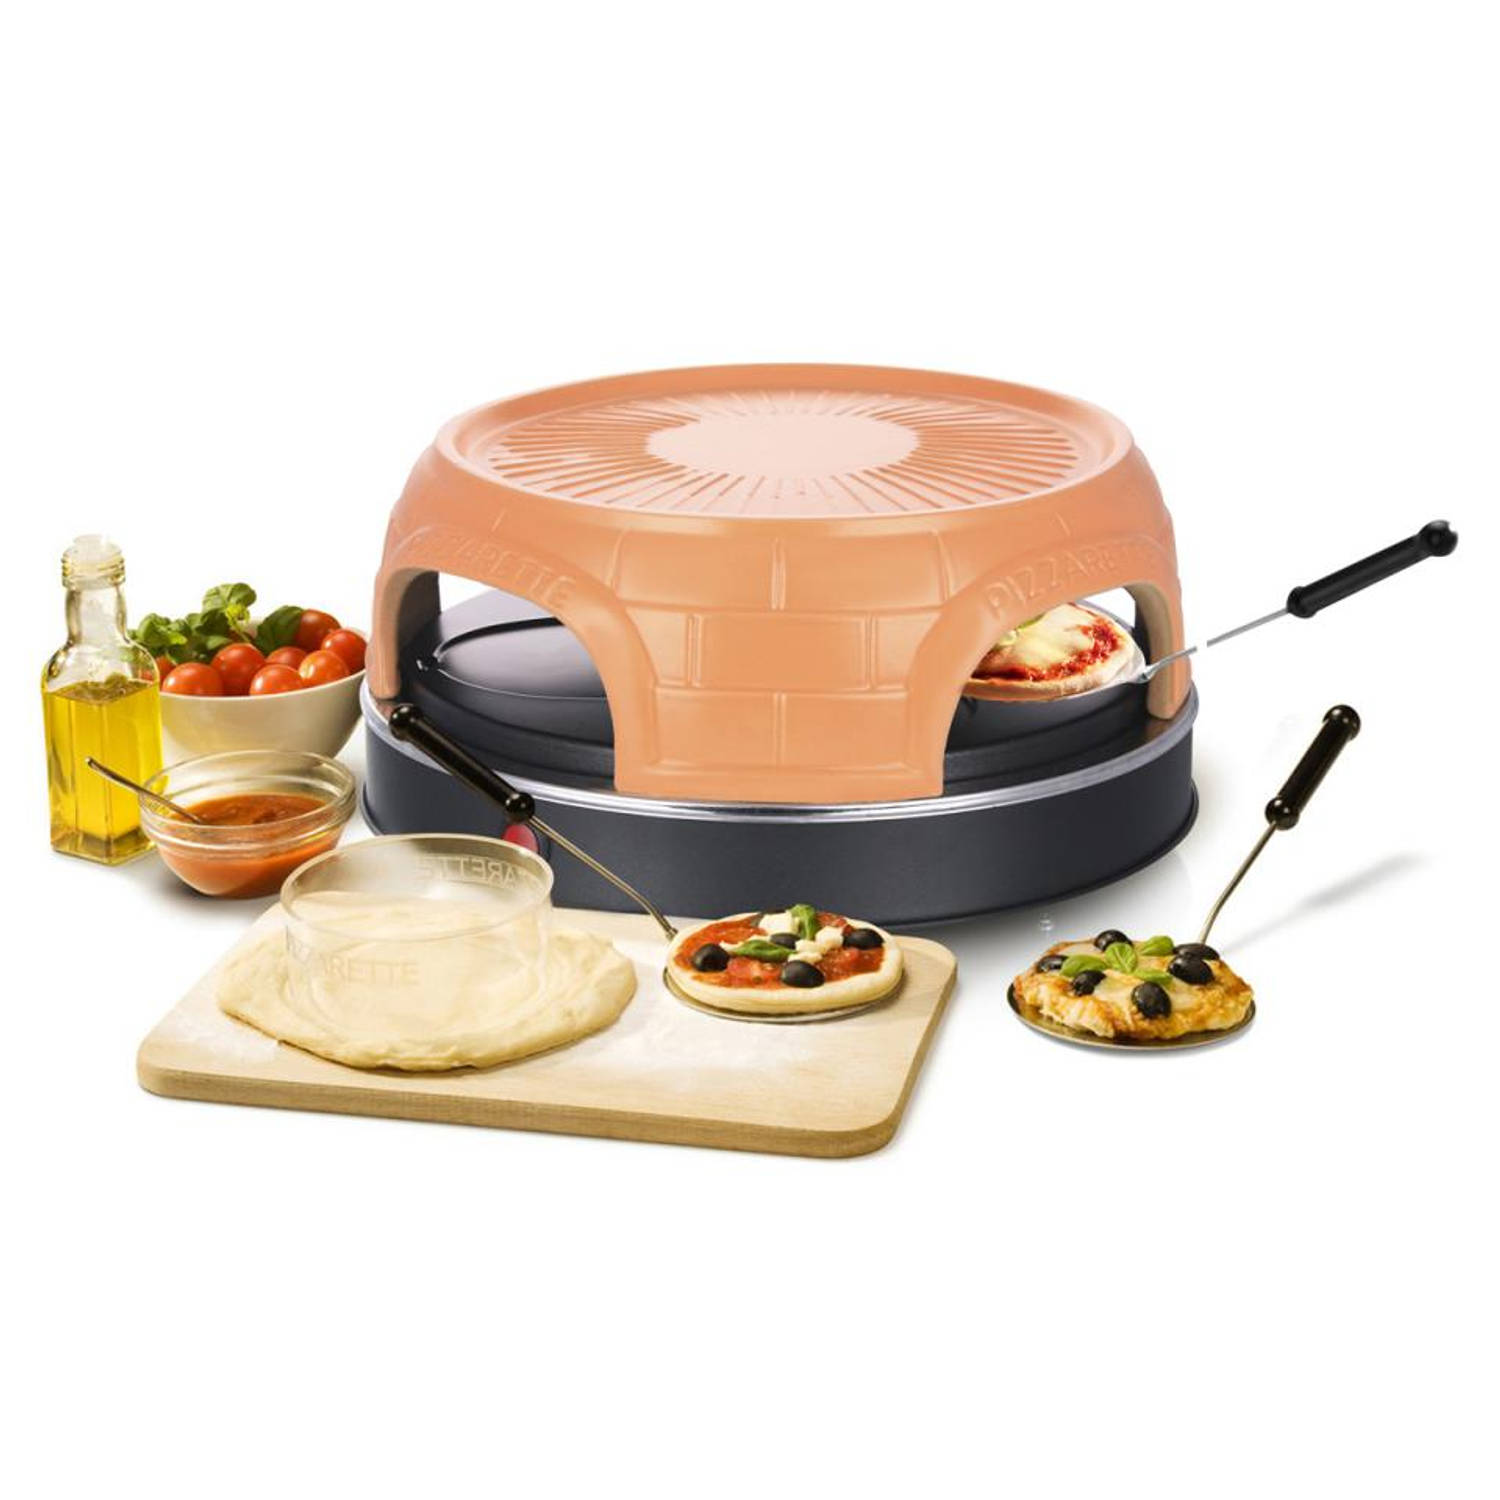 Emerio Pizzarette Keep Warm PO-115849 - 4 personen